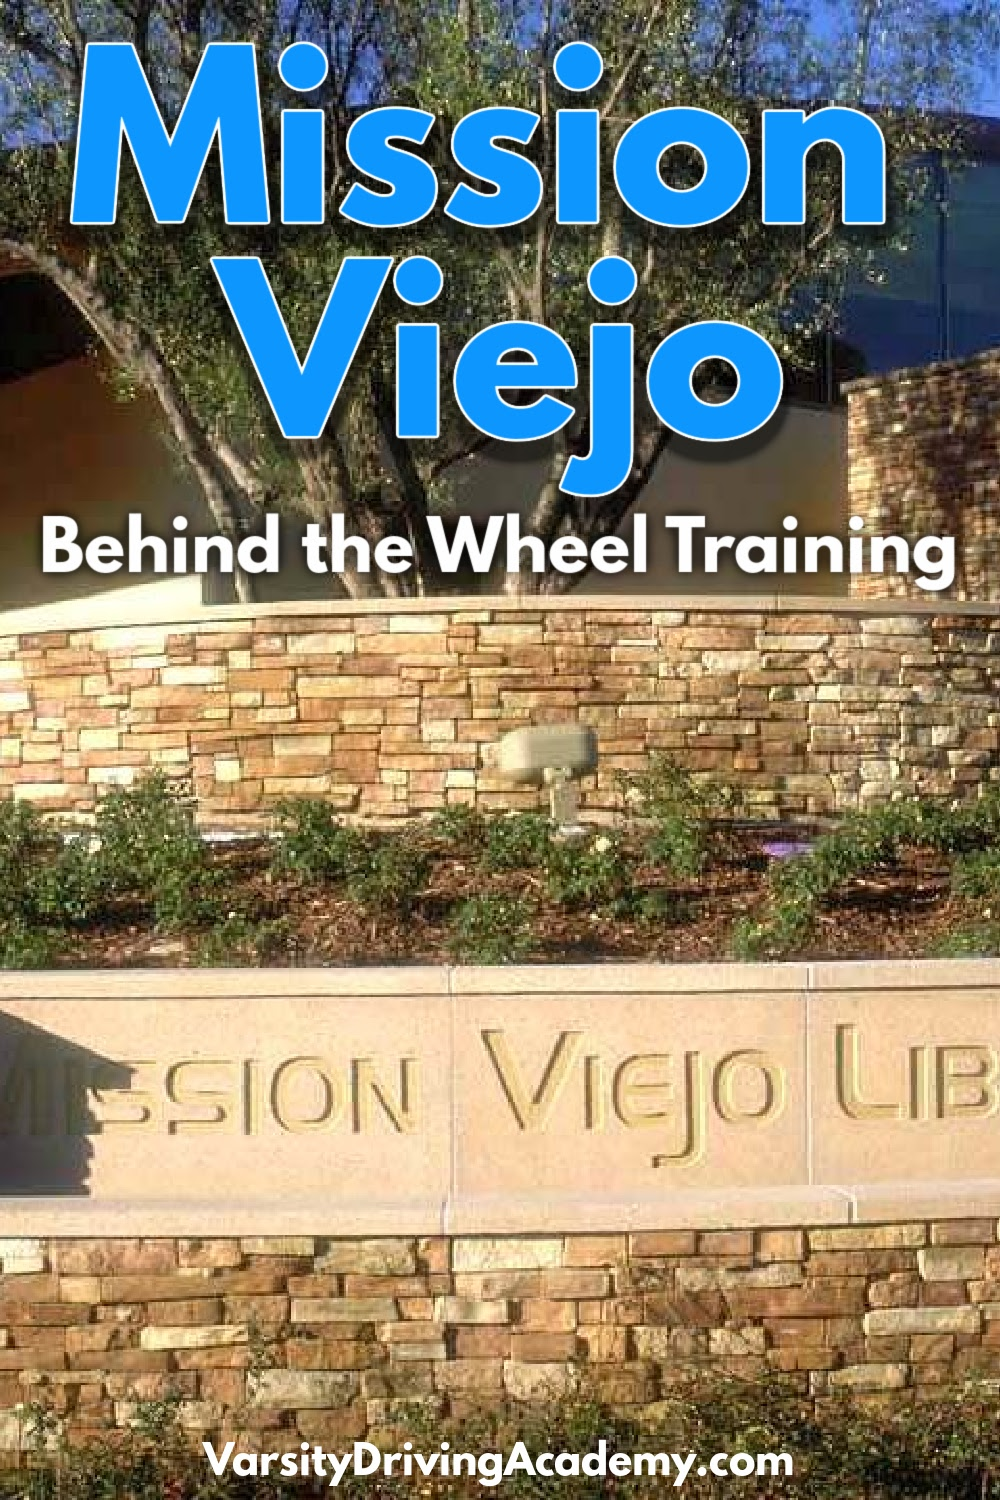 You can attend the best Mission Viejo behind the wheel training with Varsity Driving Academy, the best driving school in Mission Viejo.